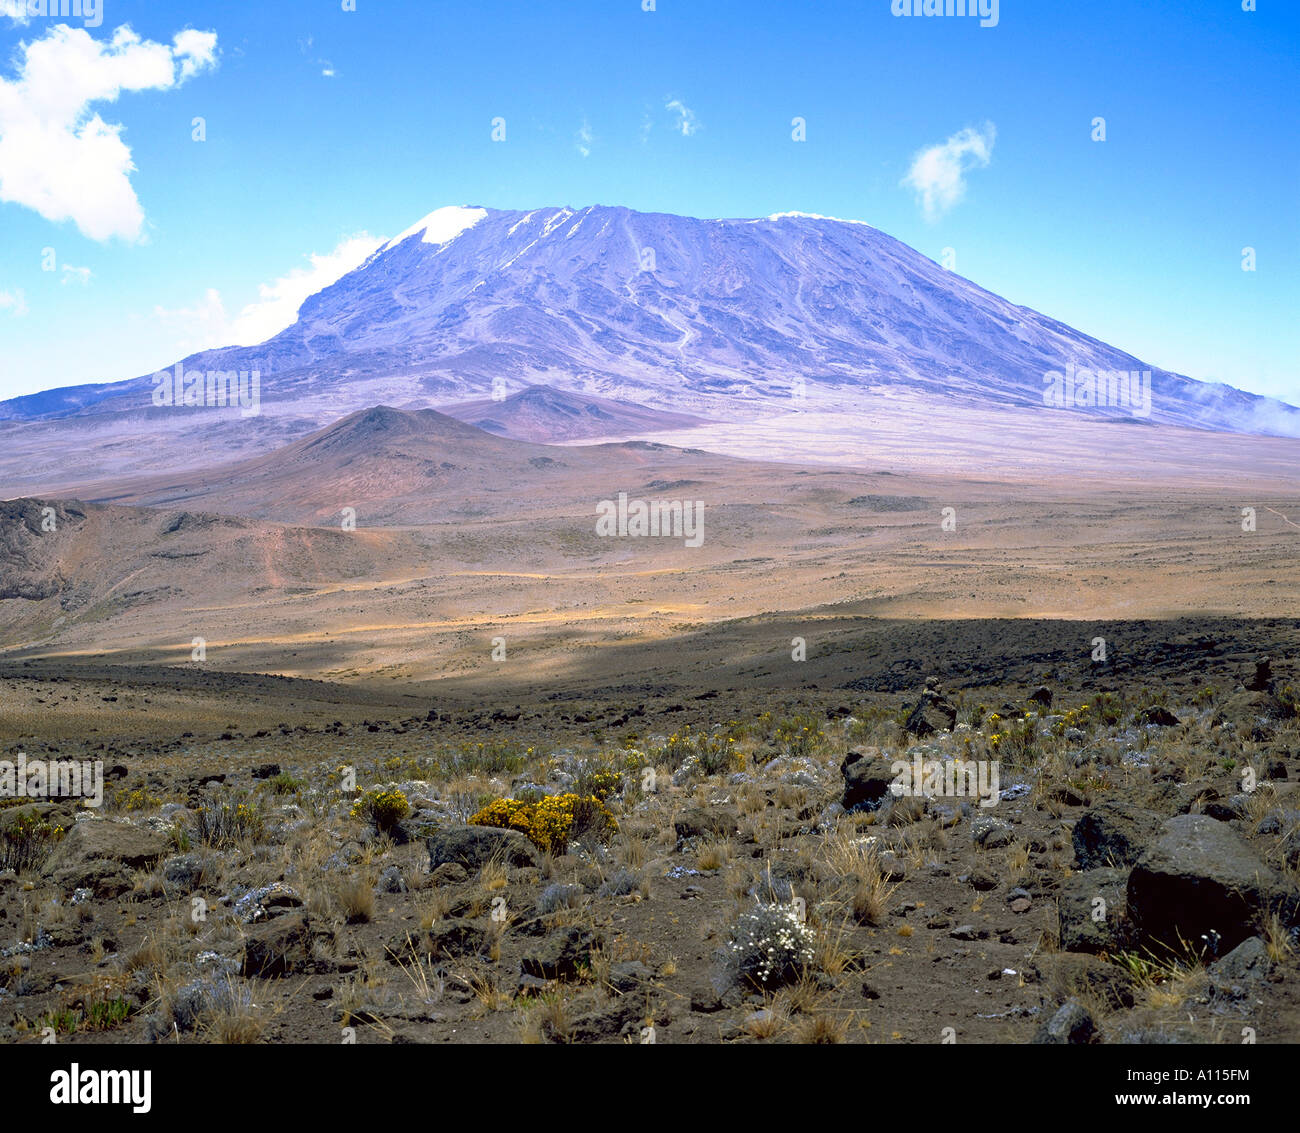 Looking to Kibo Peak Kilimanjaro across the barren expanse known as The Saddle - Stock Image